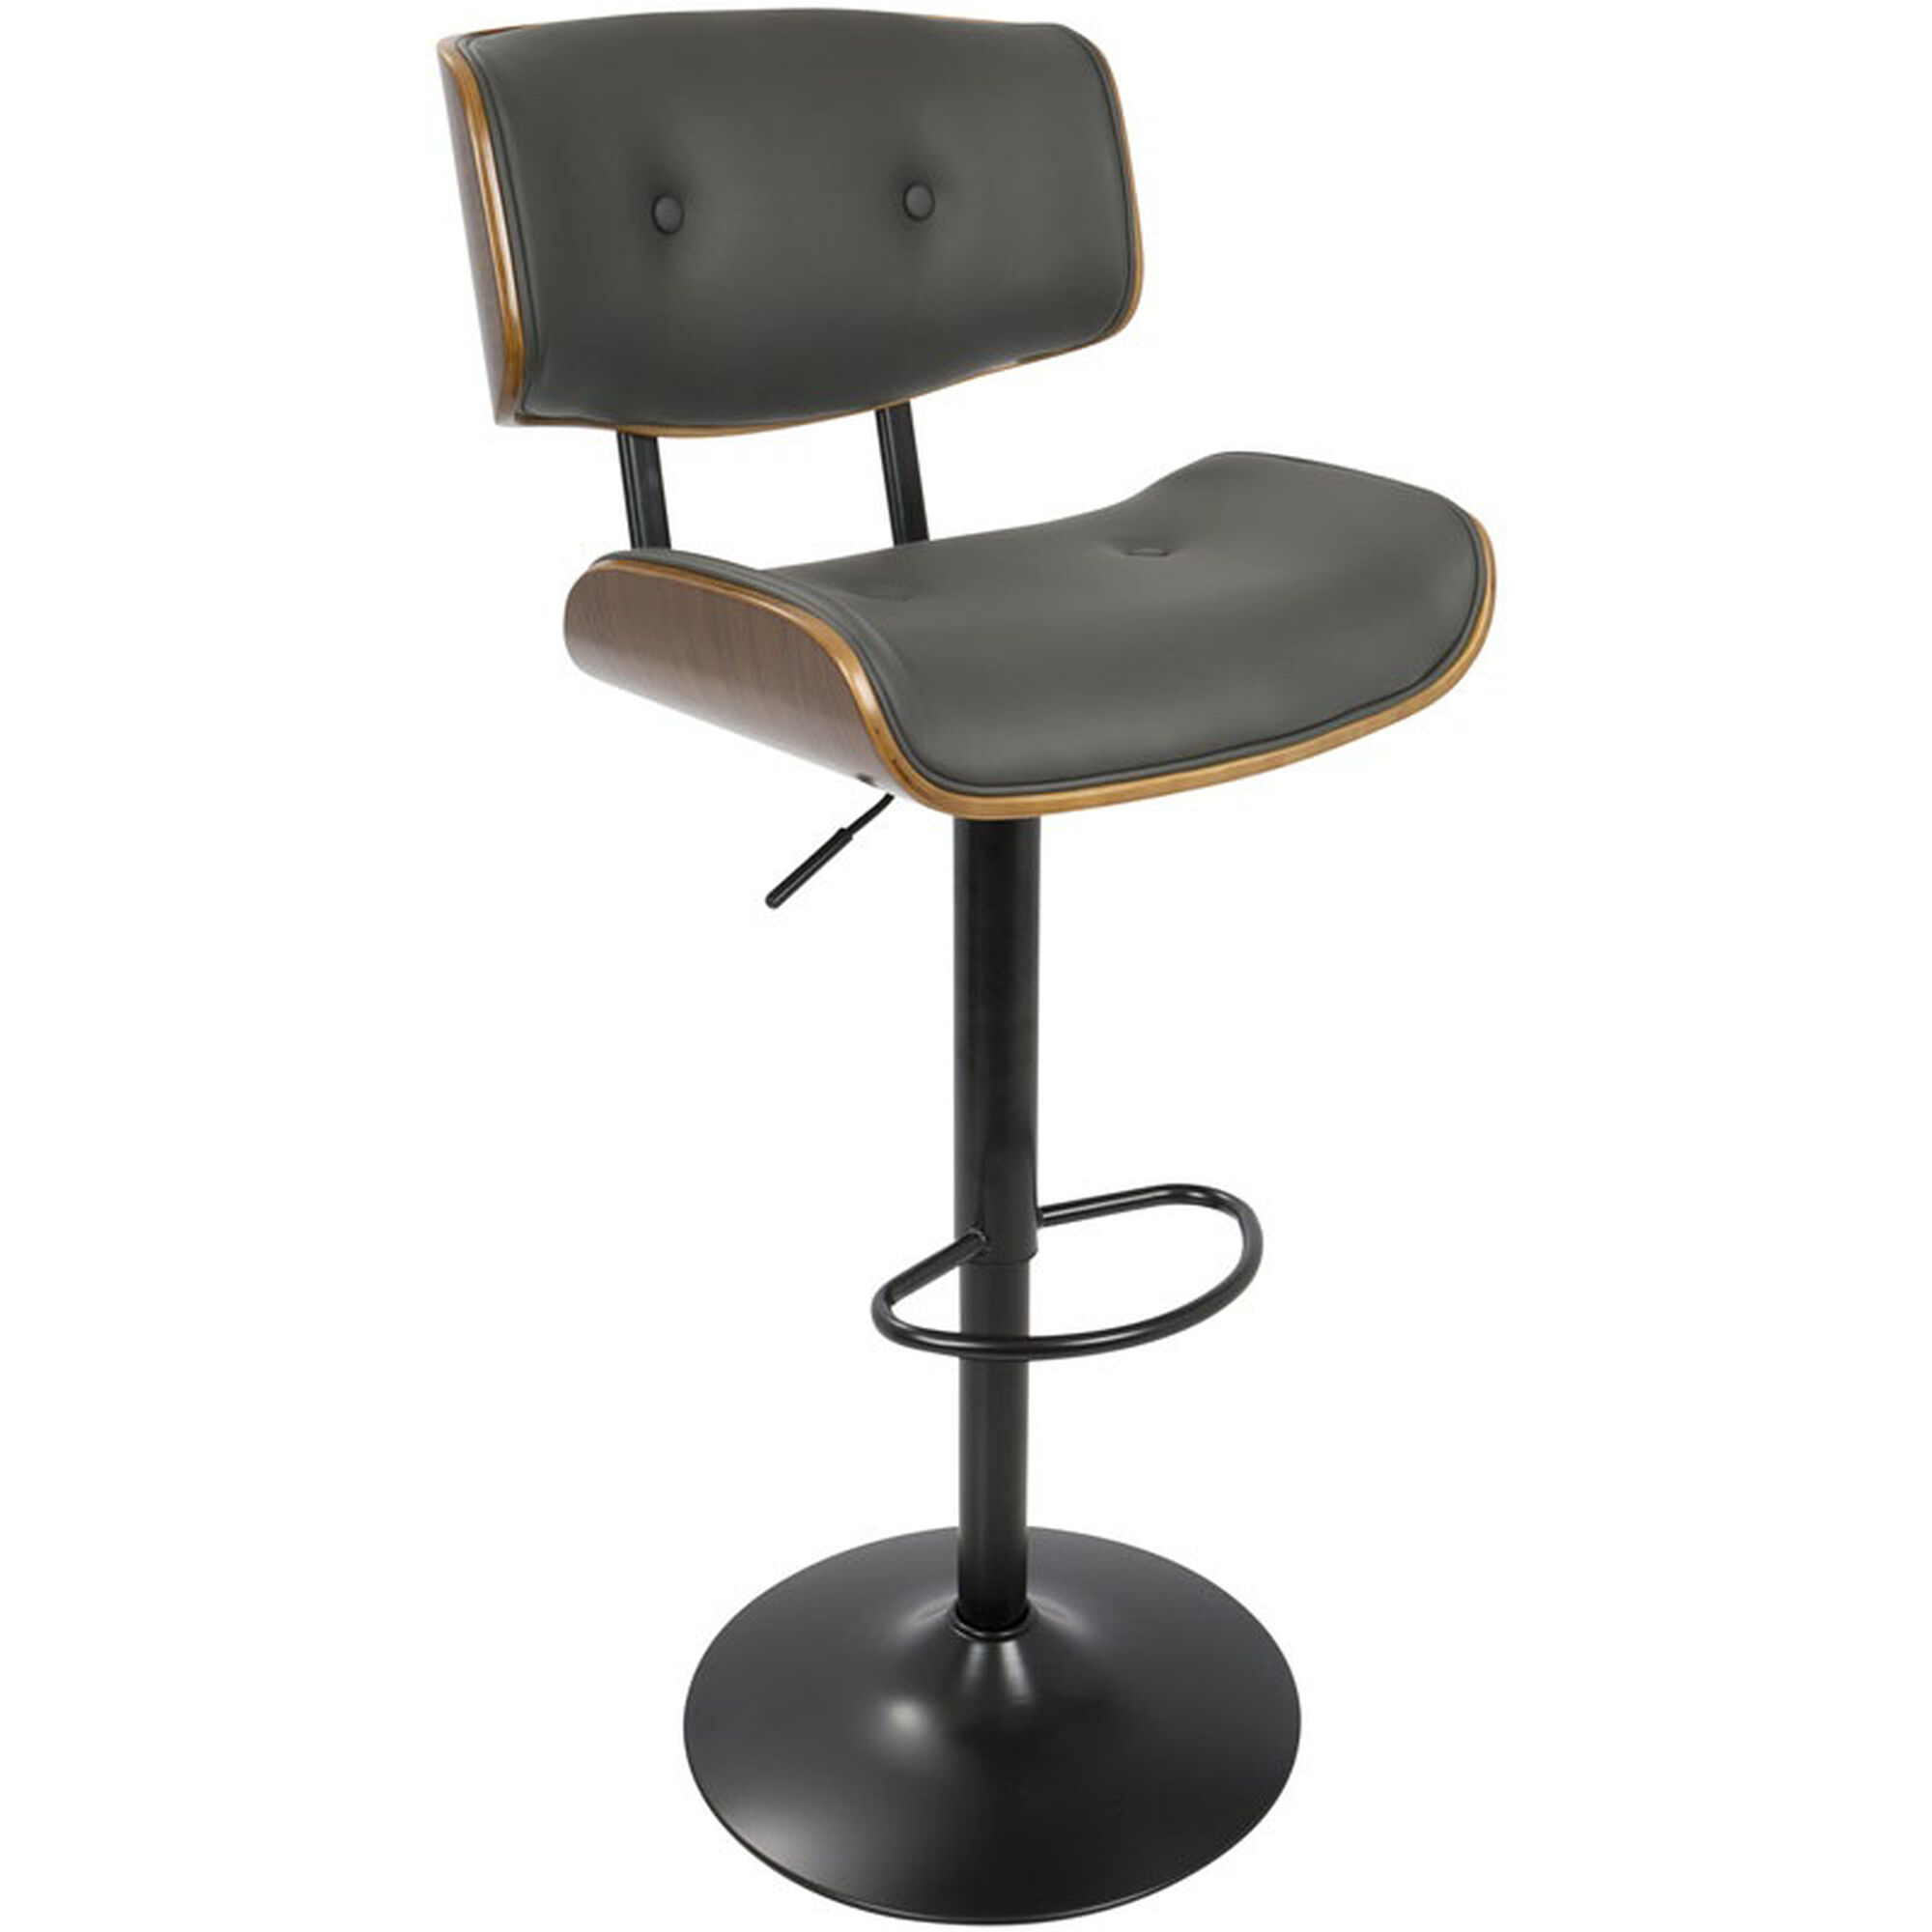 Prime Lombardi Mid Century Modern Faux Leather Height Adjustable Swivel Barstool With Walnut Accents Grey Theyellowbook Wood Chair Design Ideas Theyellowbookinfo